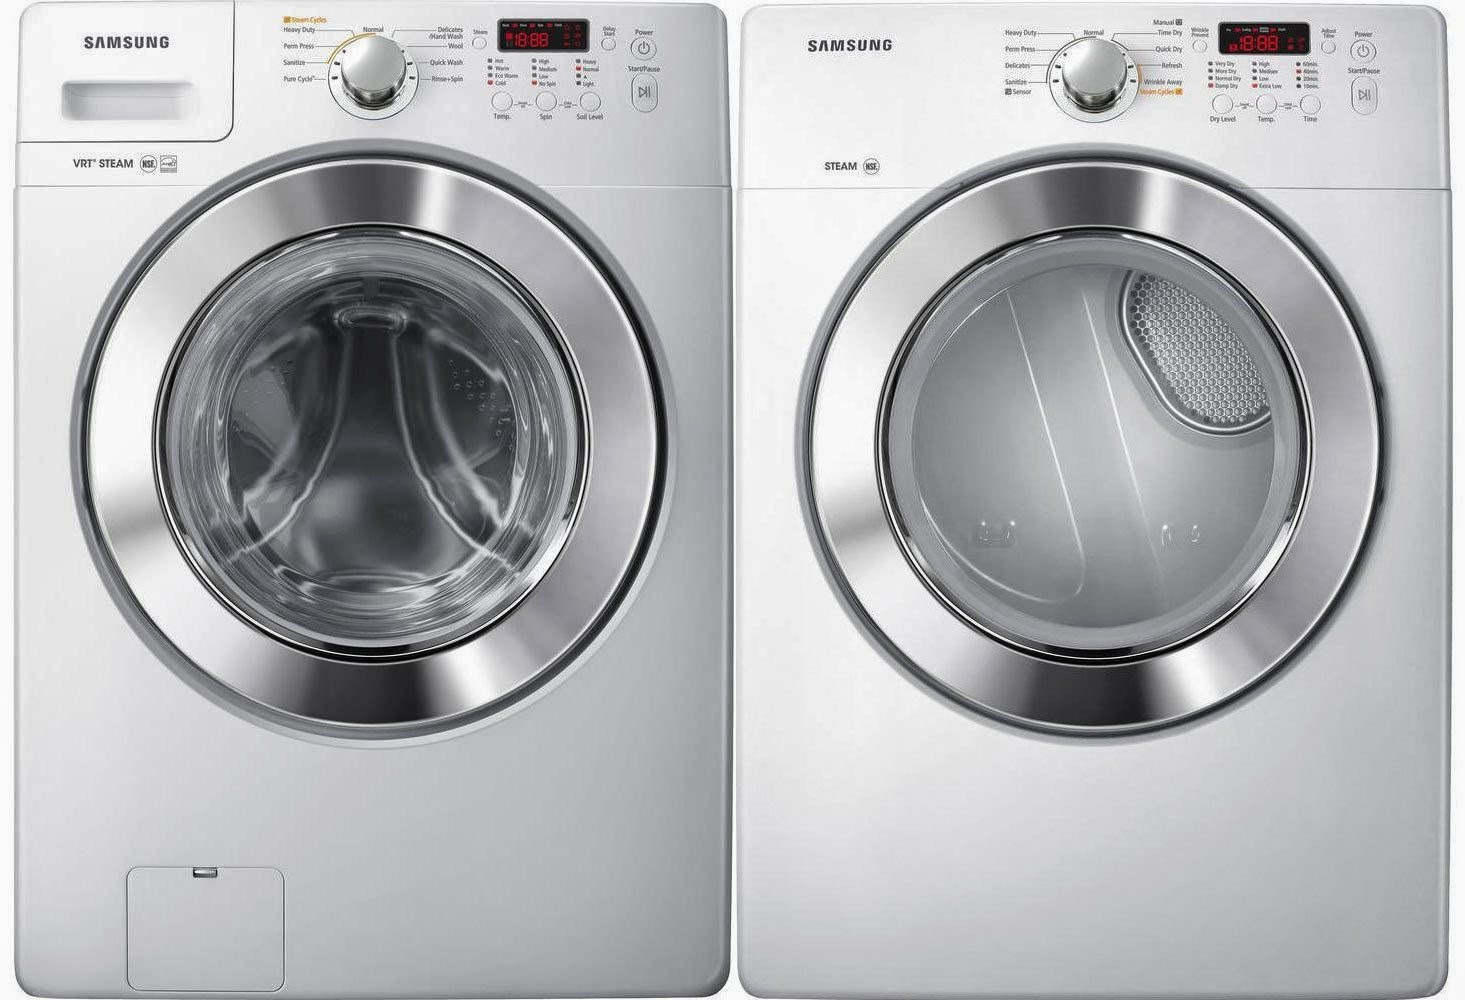 The best top load washer and dryer combo 2015 - Images Of Samsung Top Load Washer And Dryer